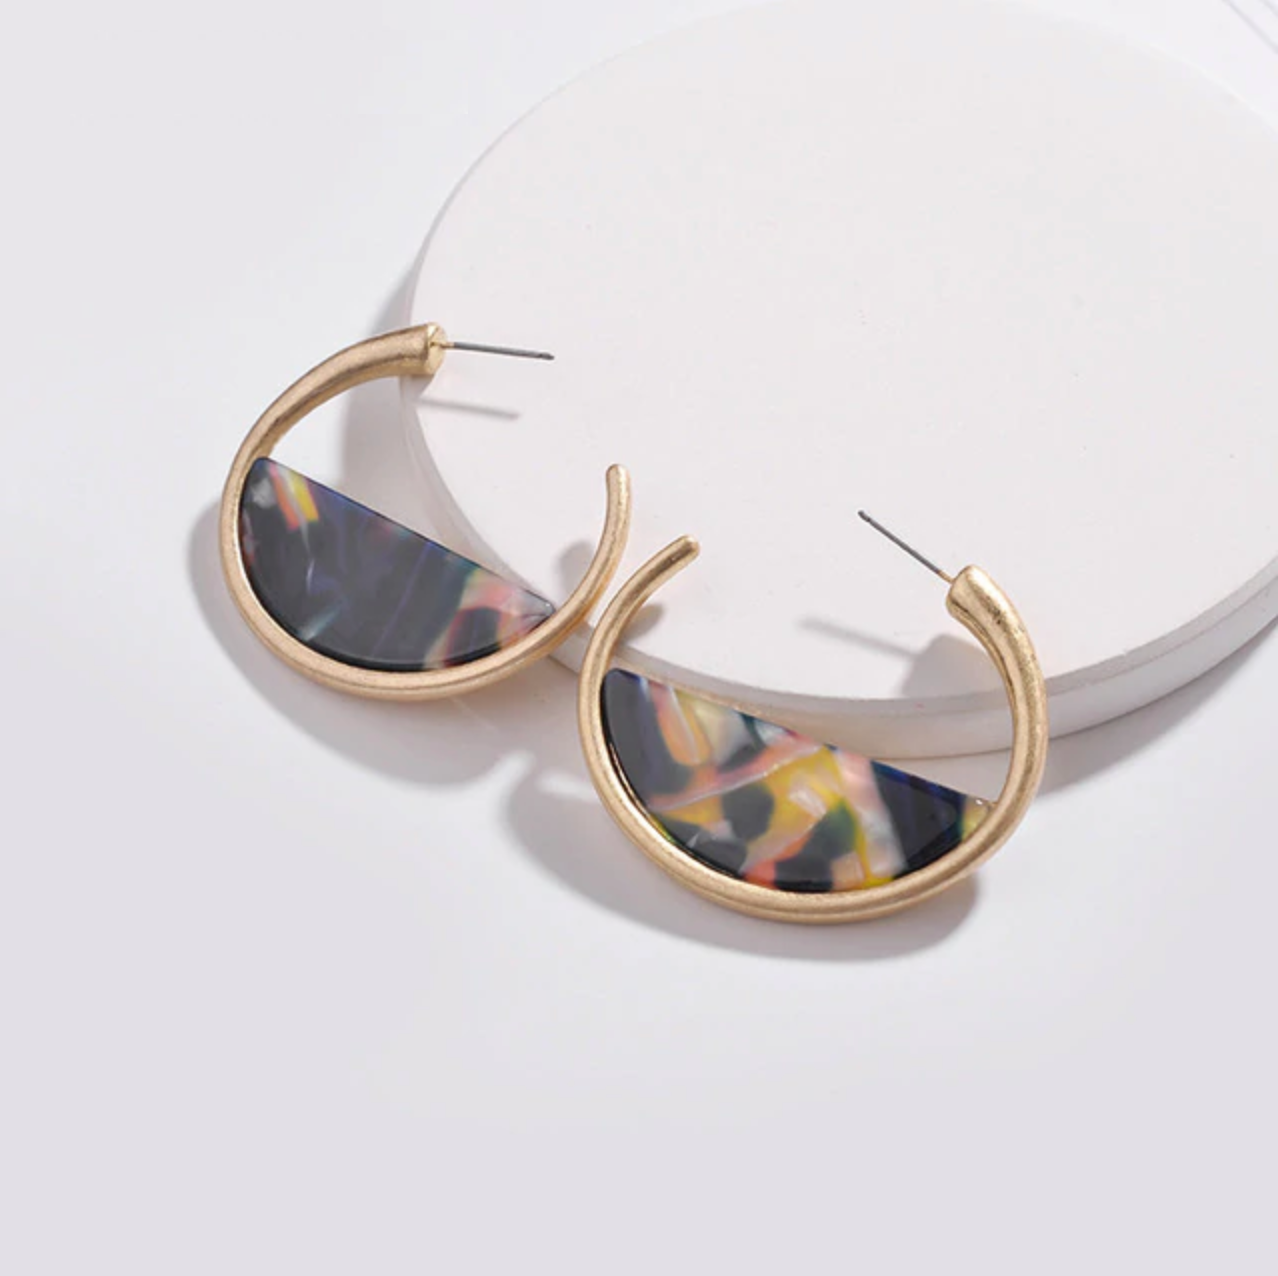 Black Sliced Acrylic & Gold Hoop Earrings